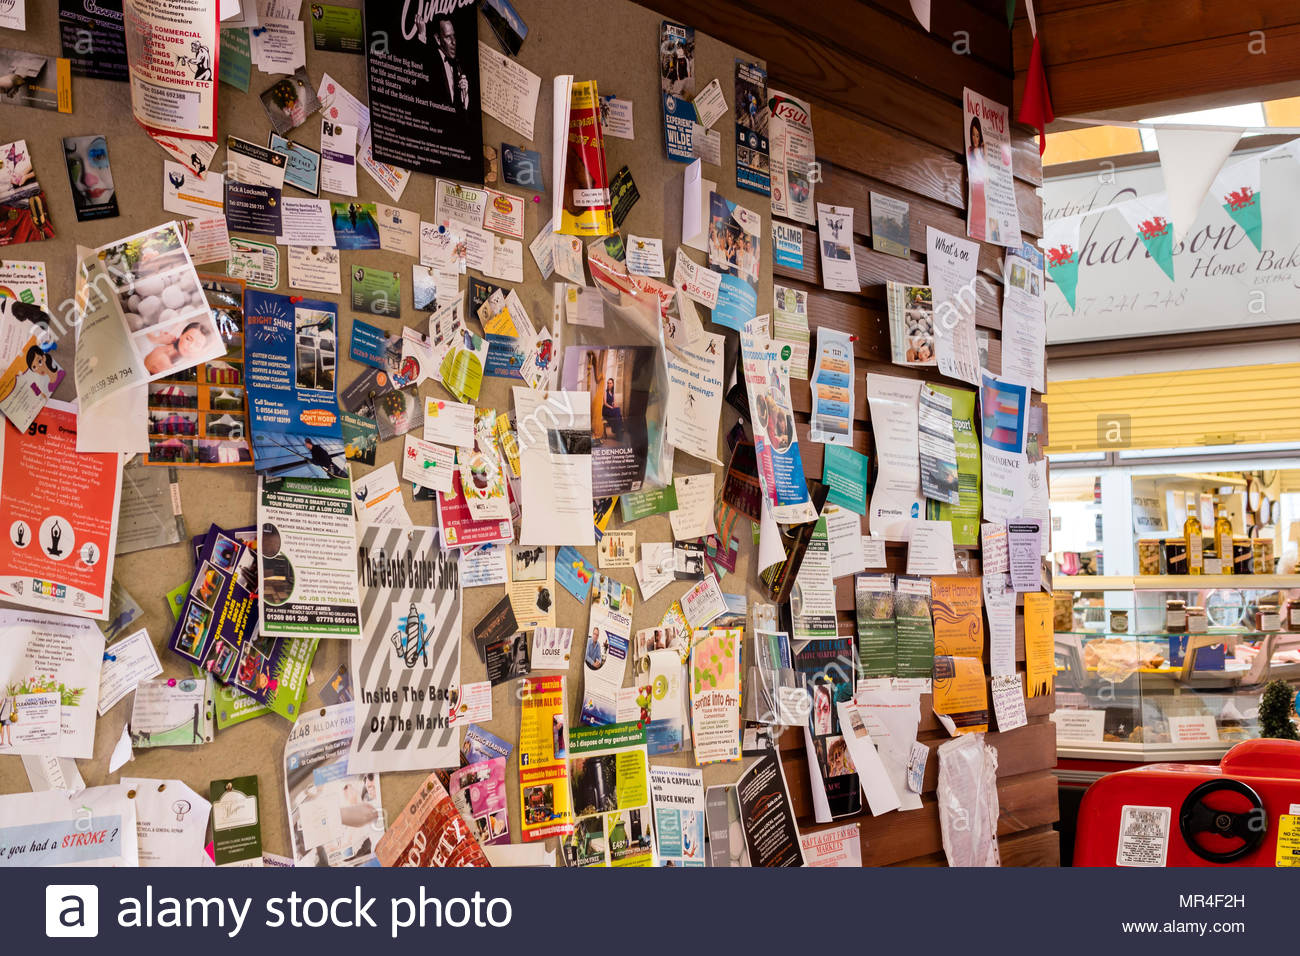 Notice board showing for sale services clubs events - Stock Image